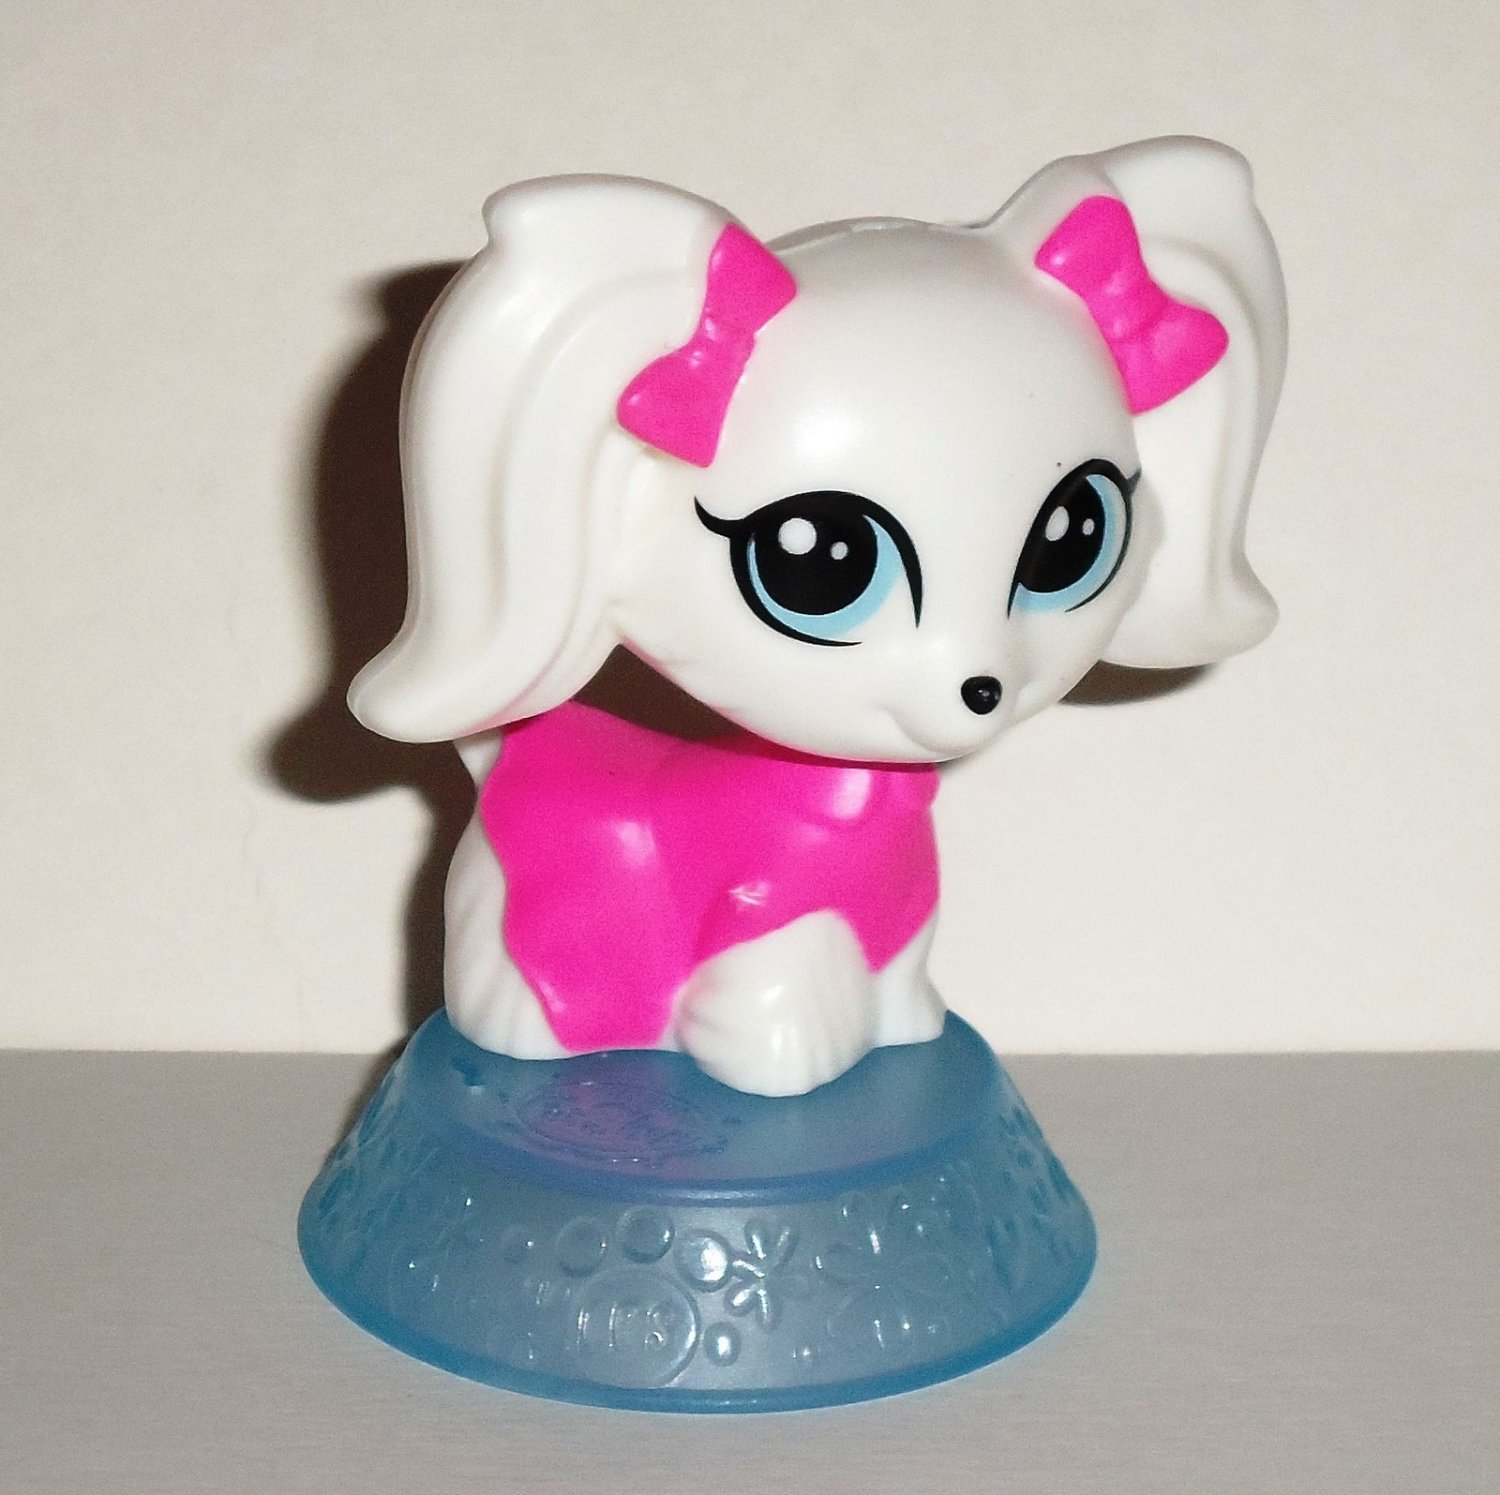 Find great deals on eBay for littlest pet shop used. Shop with confidence. Skip to main content. eBay: Shop by category. Shop by category. Enter your search keyword 5X littlest pet shop rare lps toys cats and dogs LPS short hair Cat DACHSHUND. $ or Best Offer +$ shipping. 88 Sold 88 Sold.